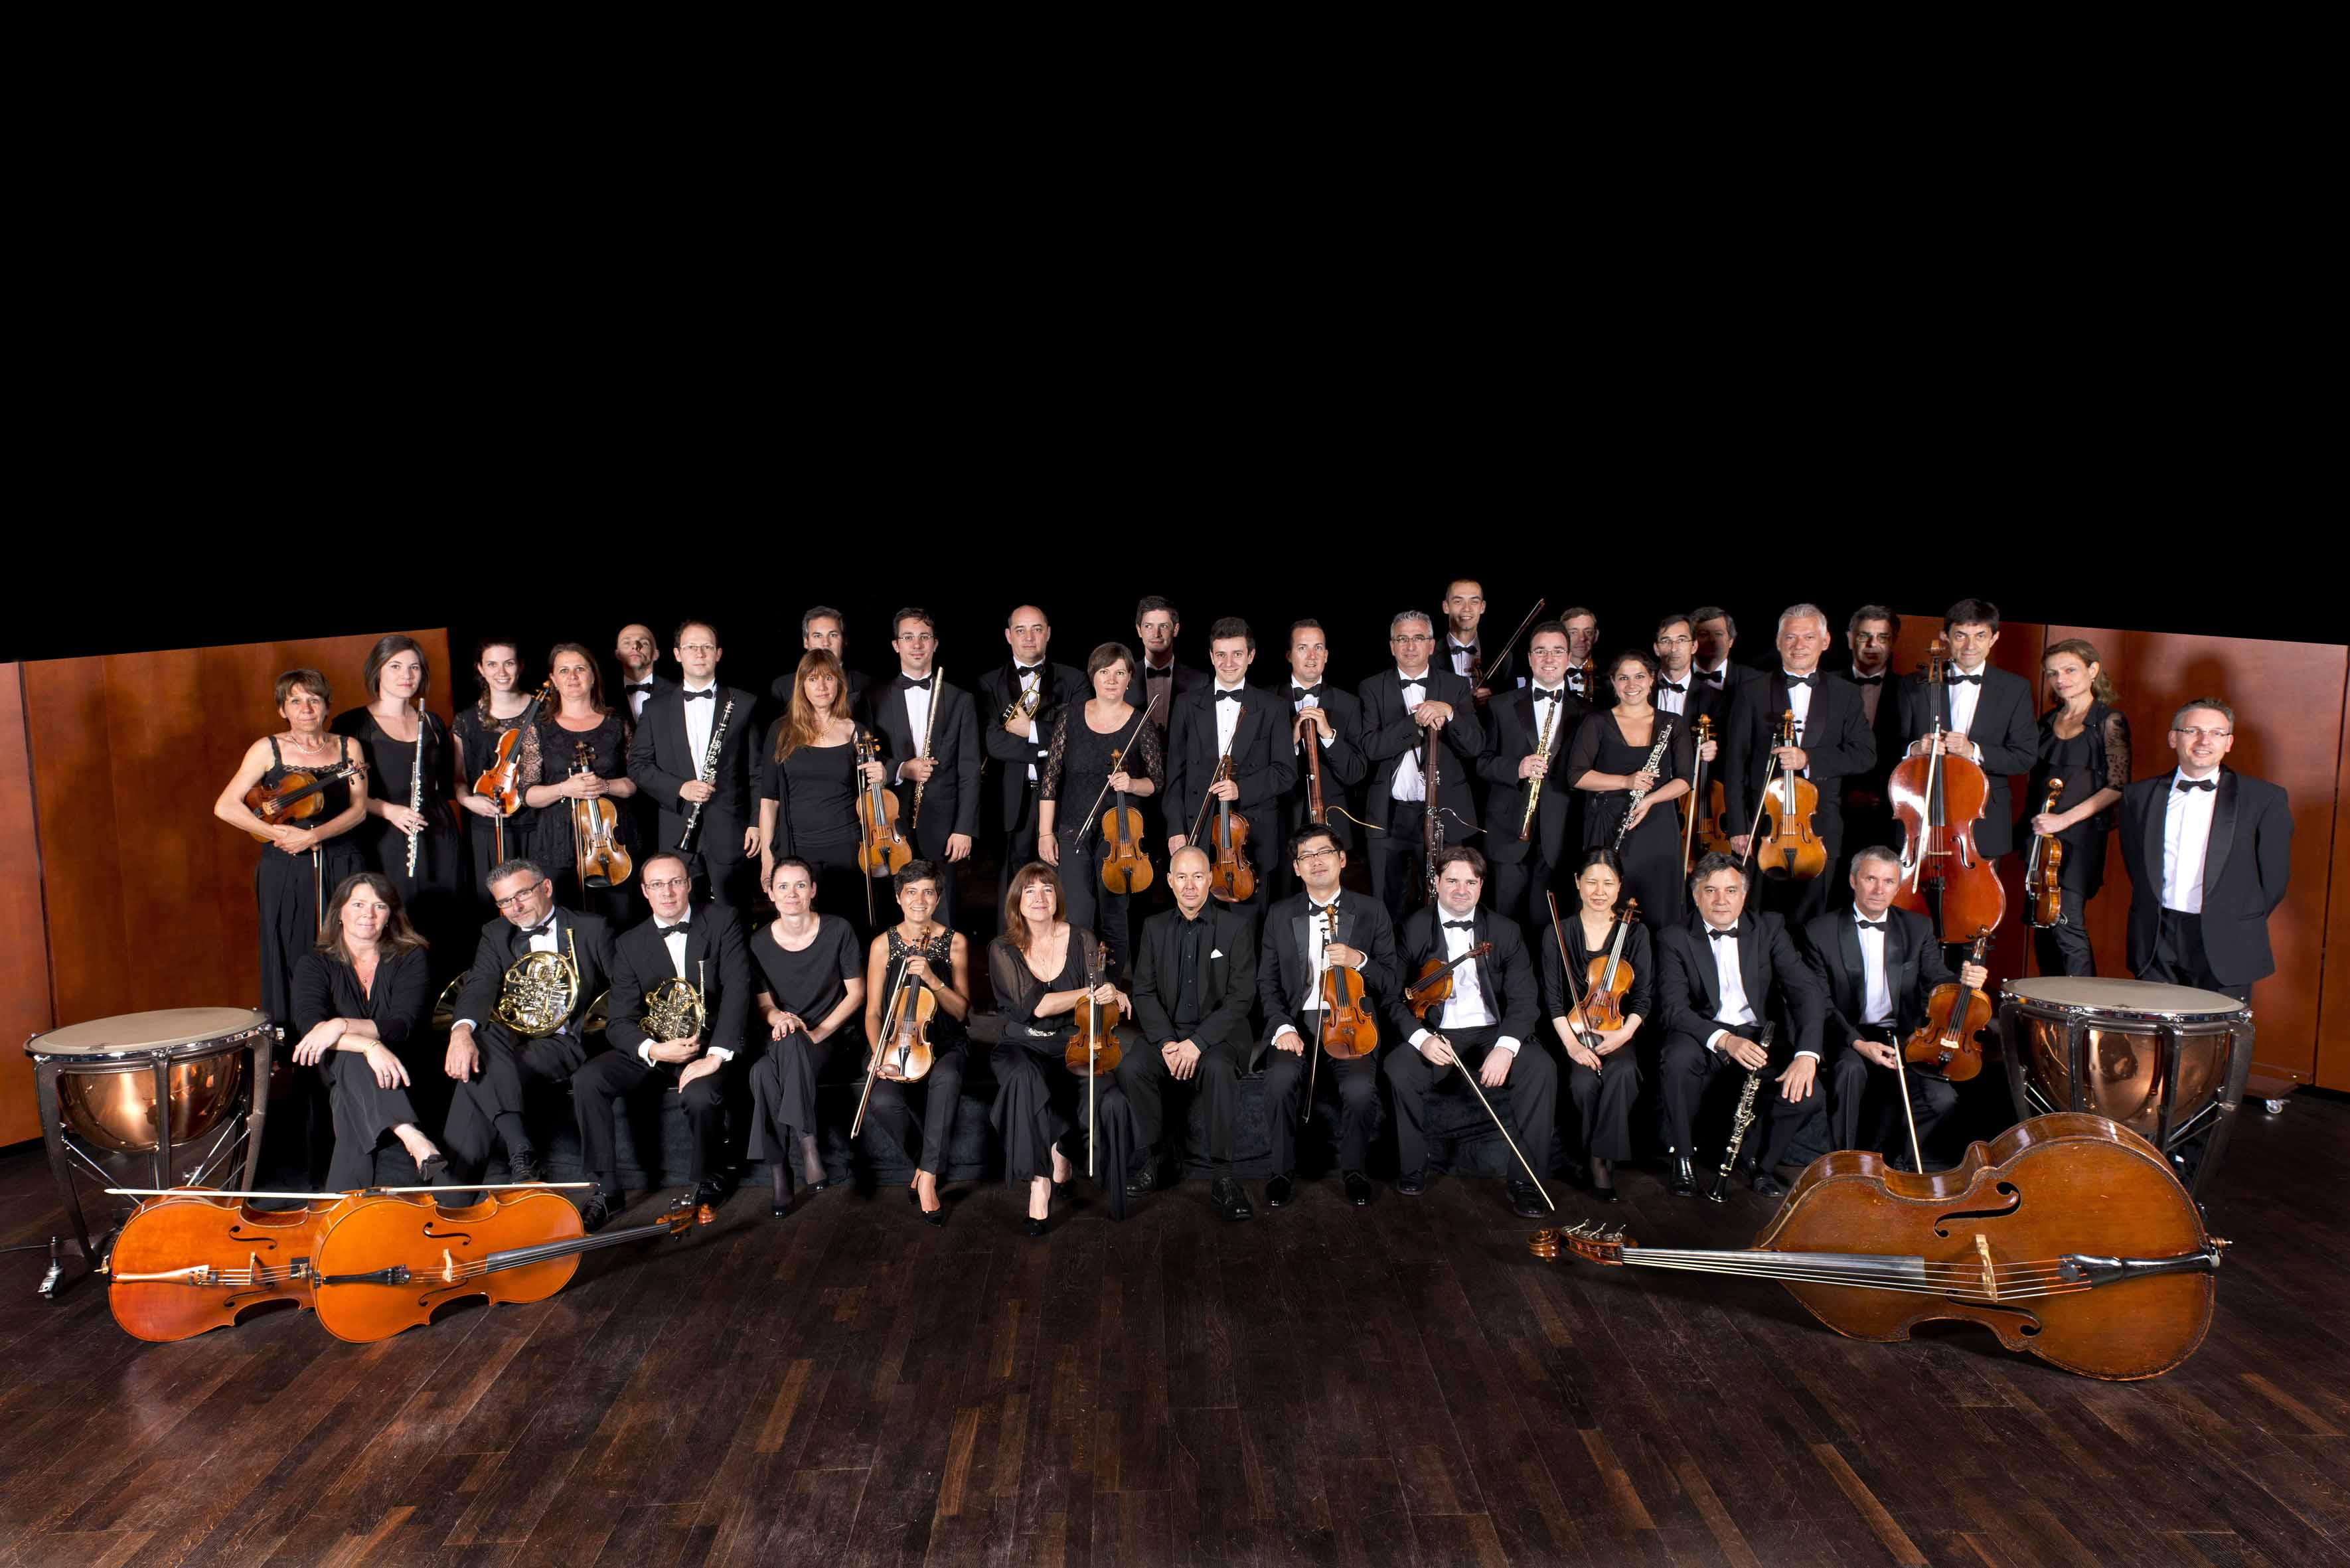 Orchestre regional de Cannes & chef-photo Hugues Lagarde 2013-428